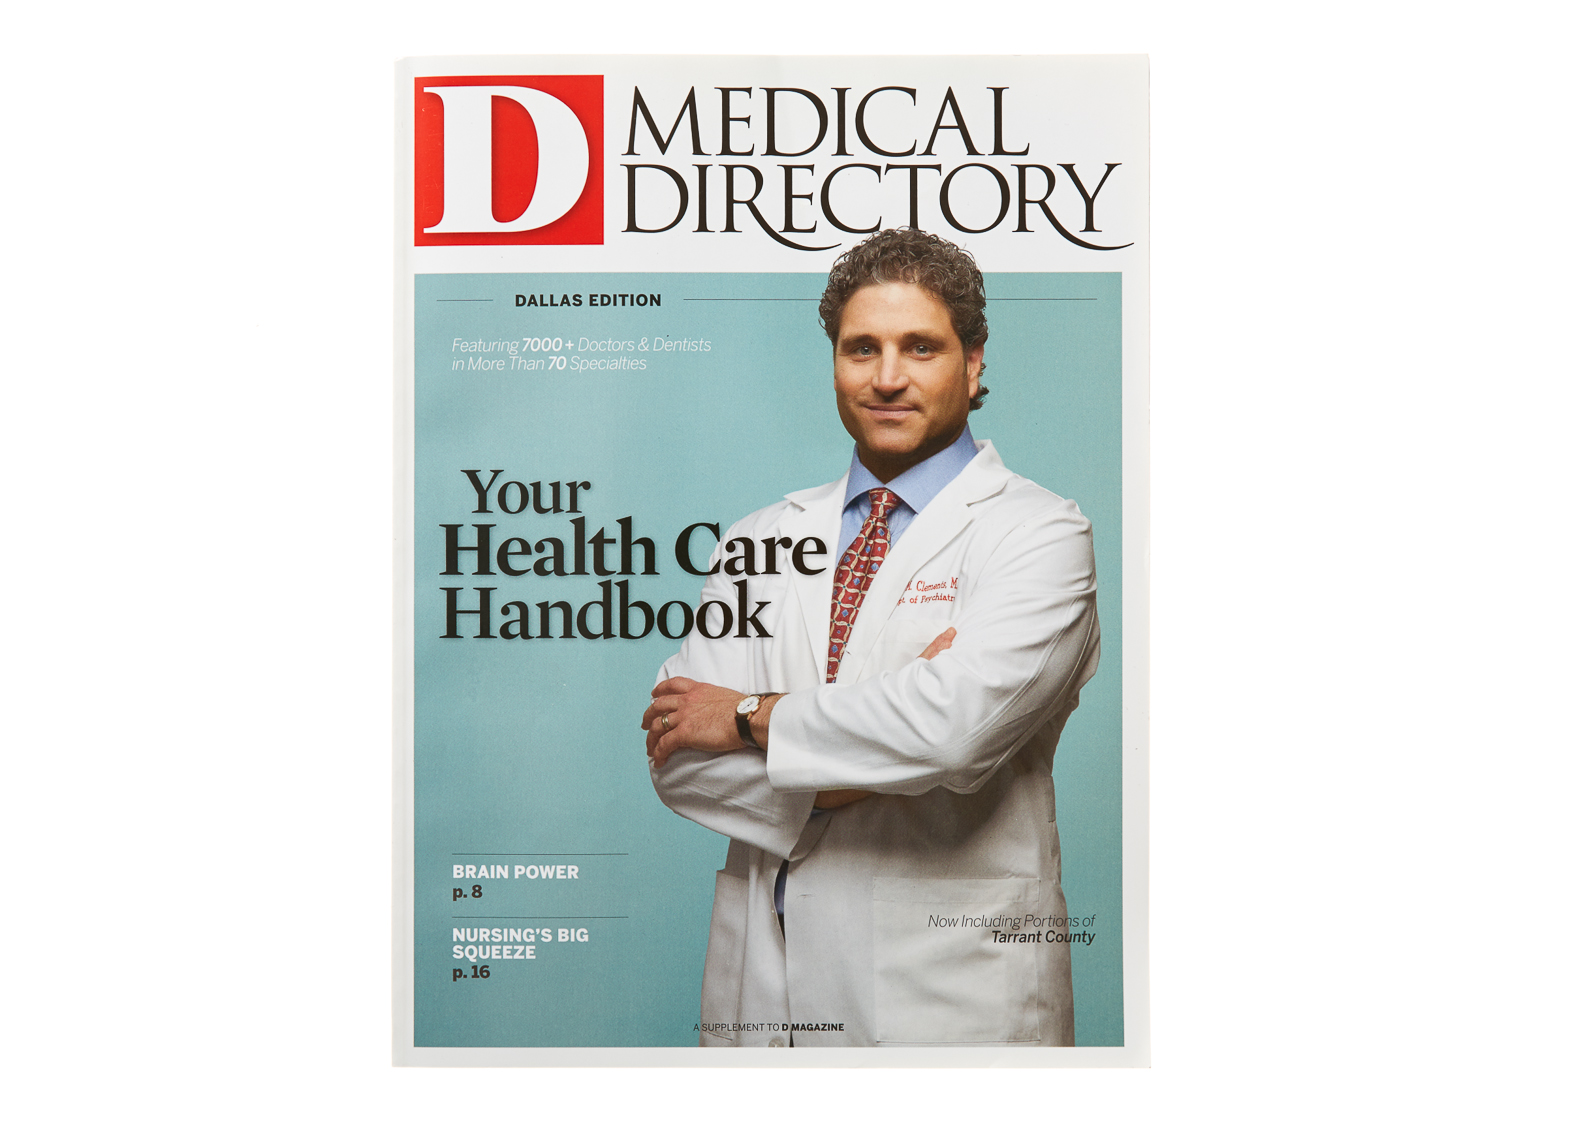 DMEDICAL_2010_cover